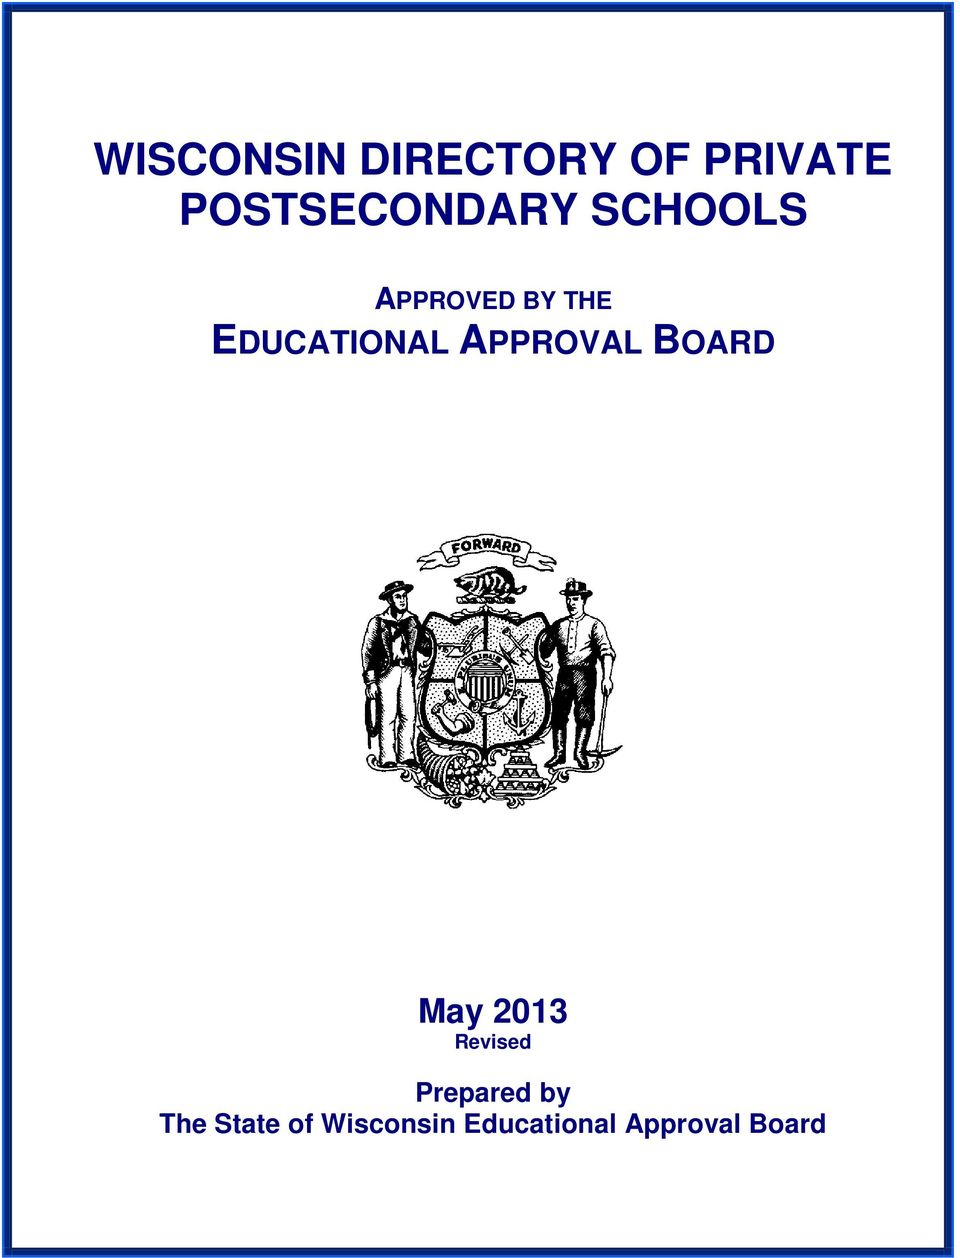 EDUCATIONAL APPROVAL BOARD May 2013 Revised